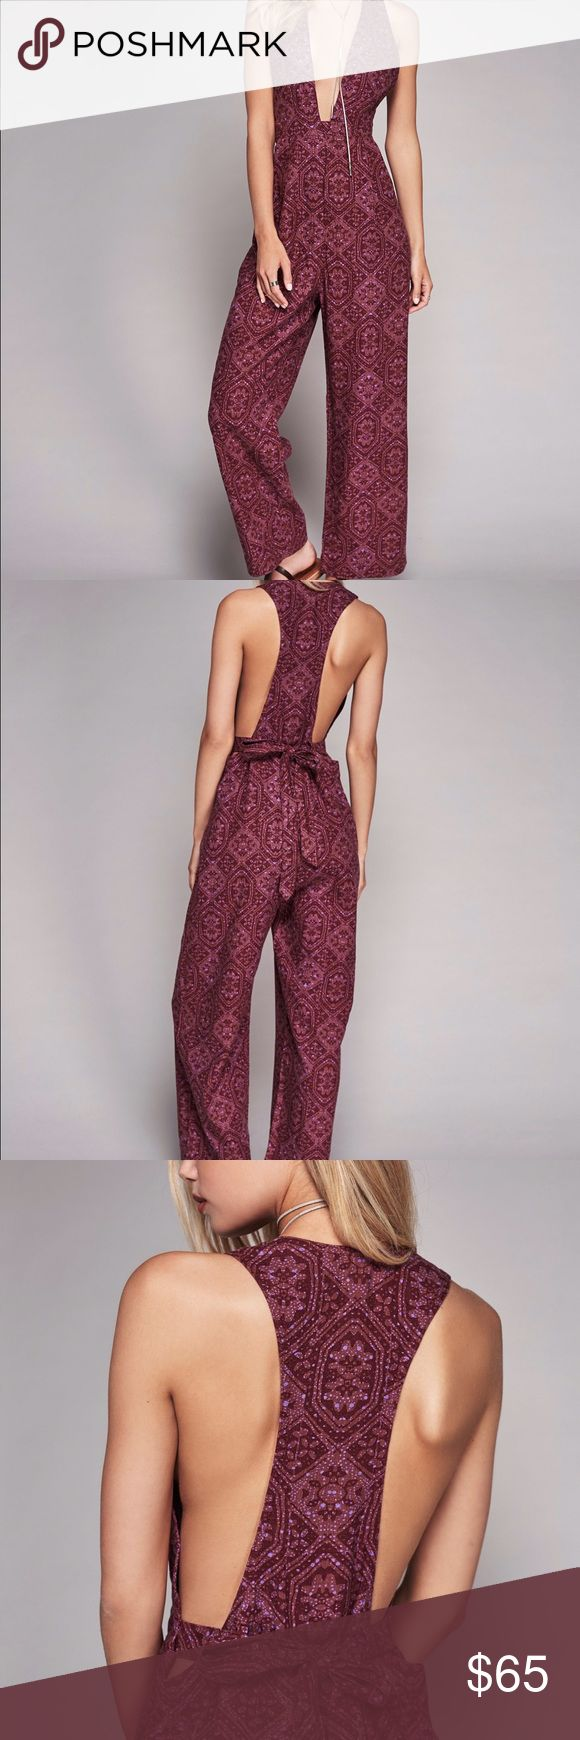 Free people my kind of woman one piece berry combo Printed one piece featuring a plunging V-neckline and a racerback with an adjustable tie in back. Wide legs with pleating around the waistband. Hidden side zip closure.  55% Linen 45% Rayon Machine Wash Cold Import Free People Pants Jumpsuits & Rompers